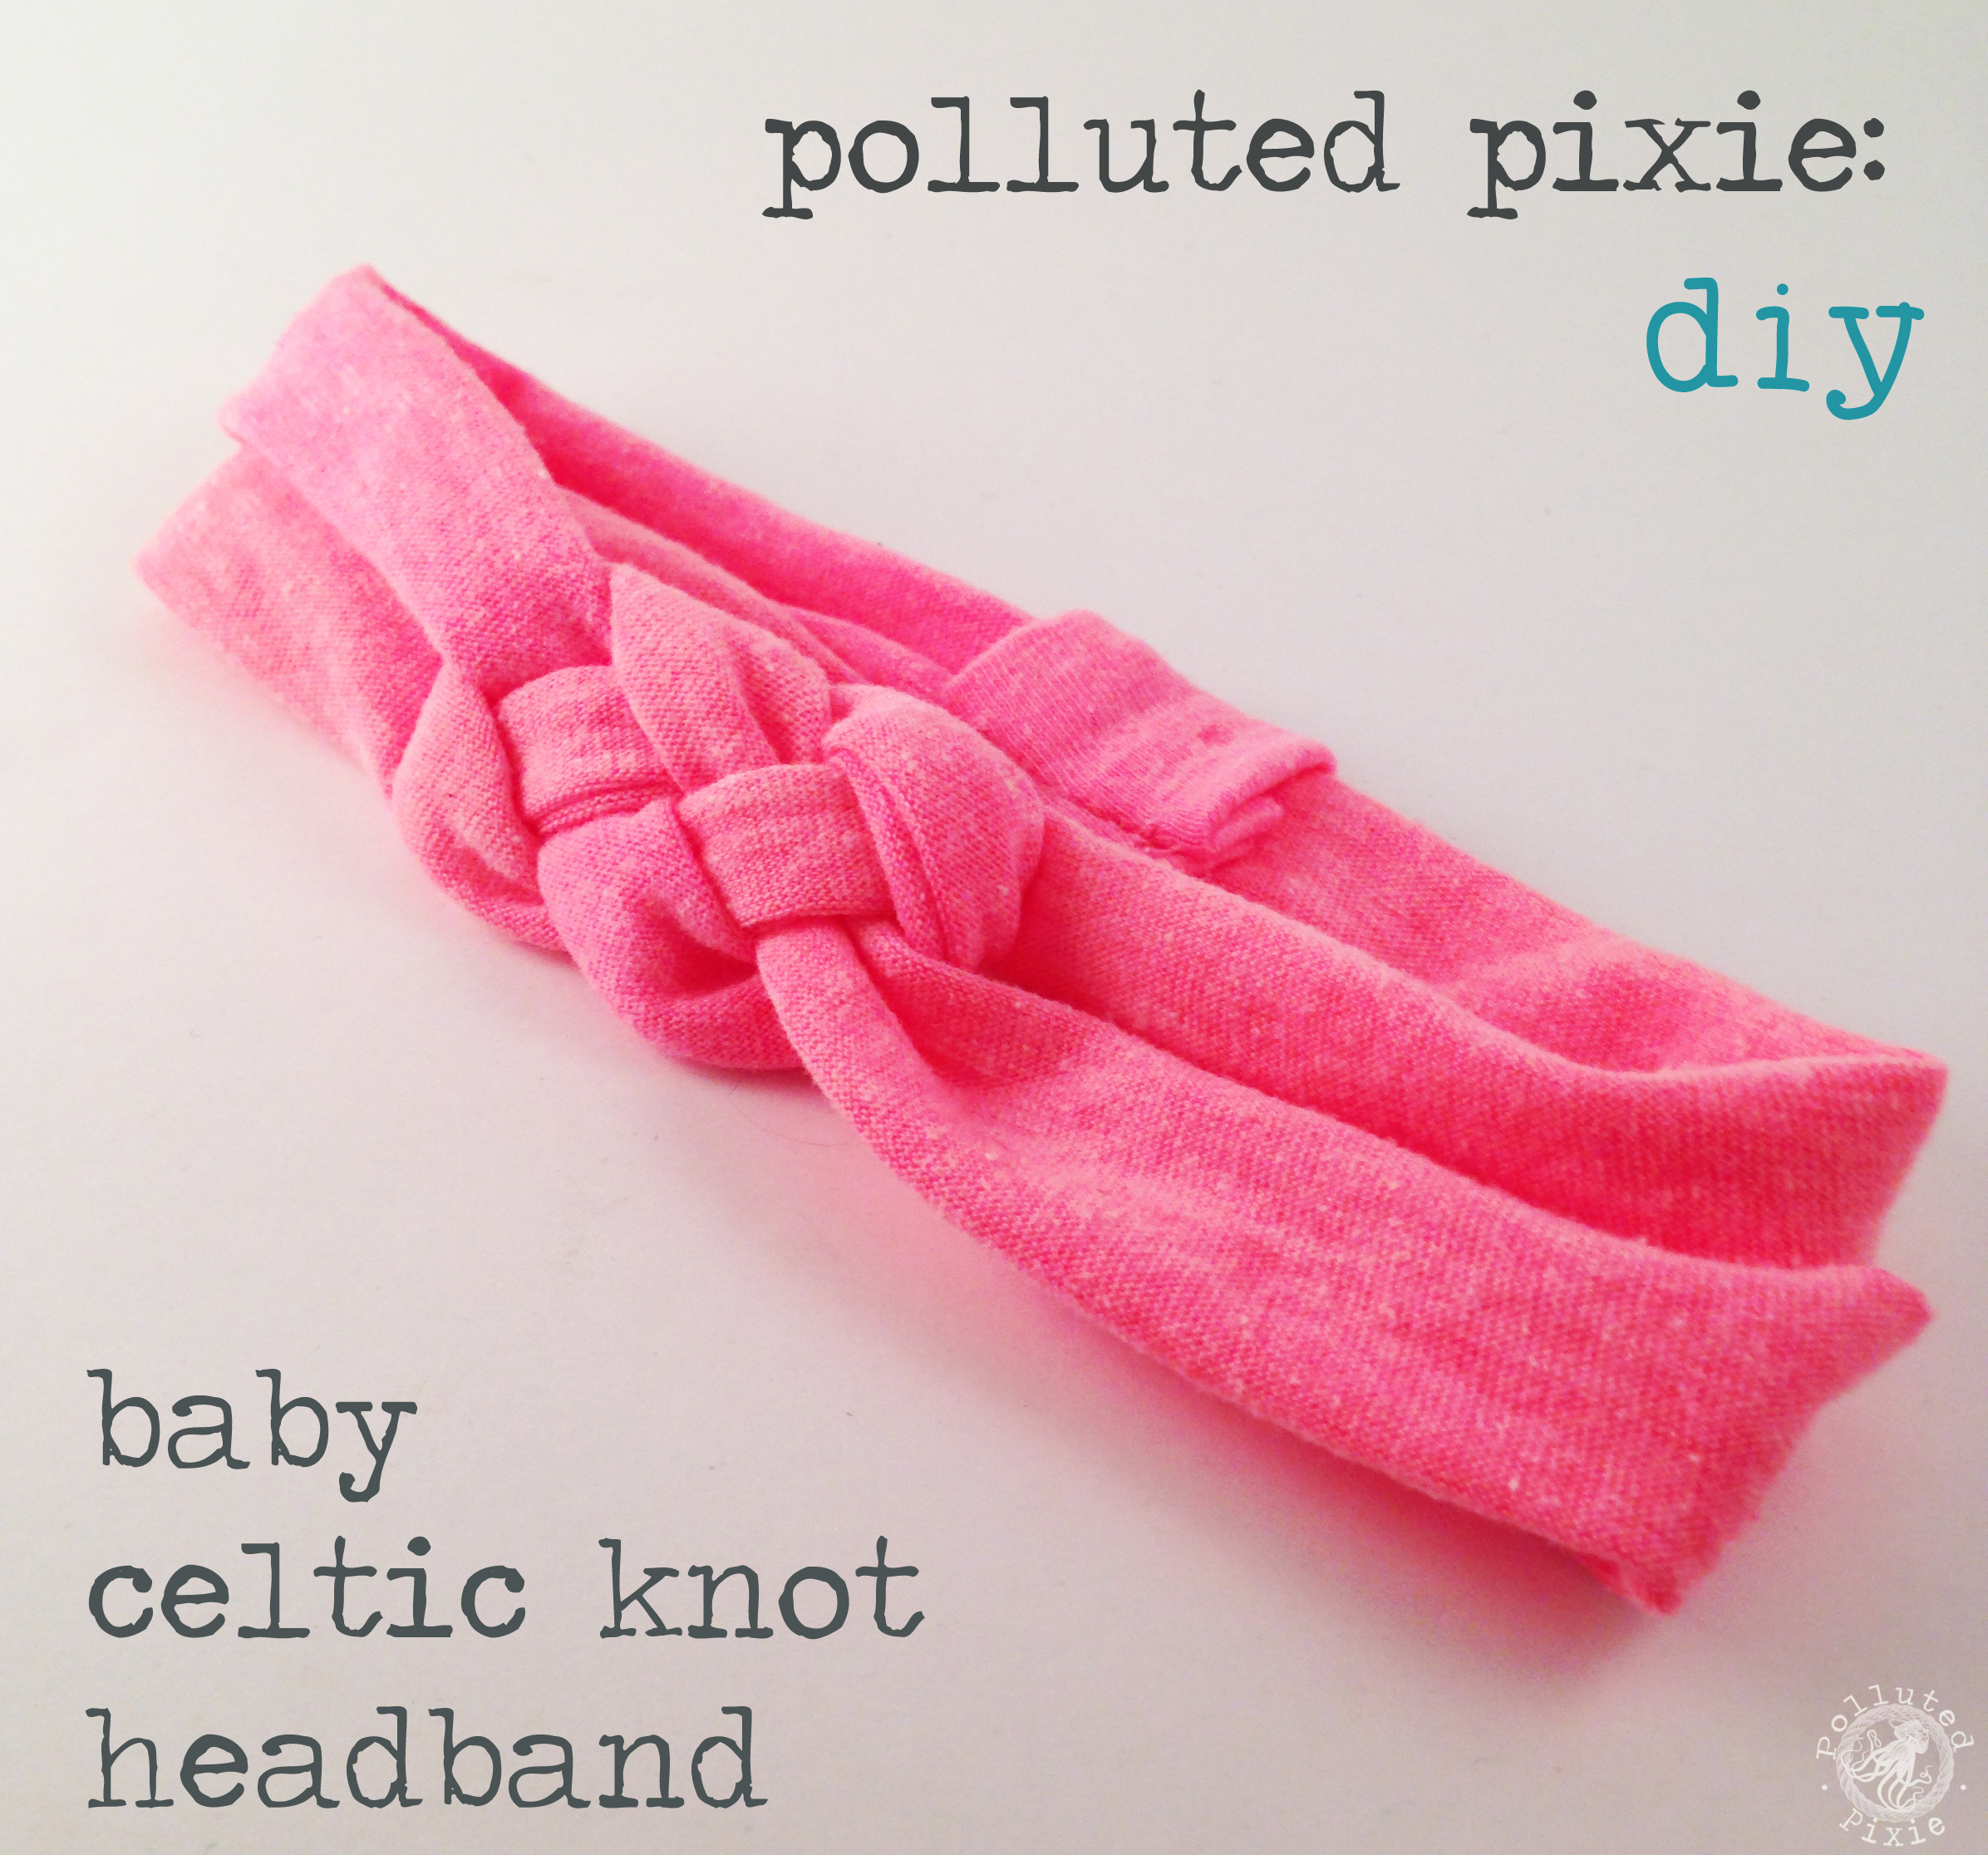 diy: baby celtic knot headband